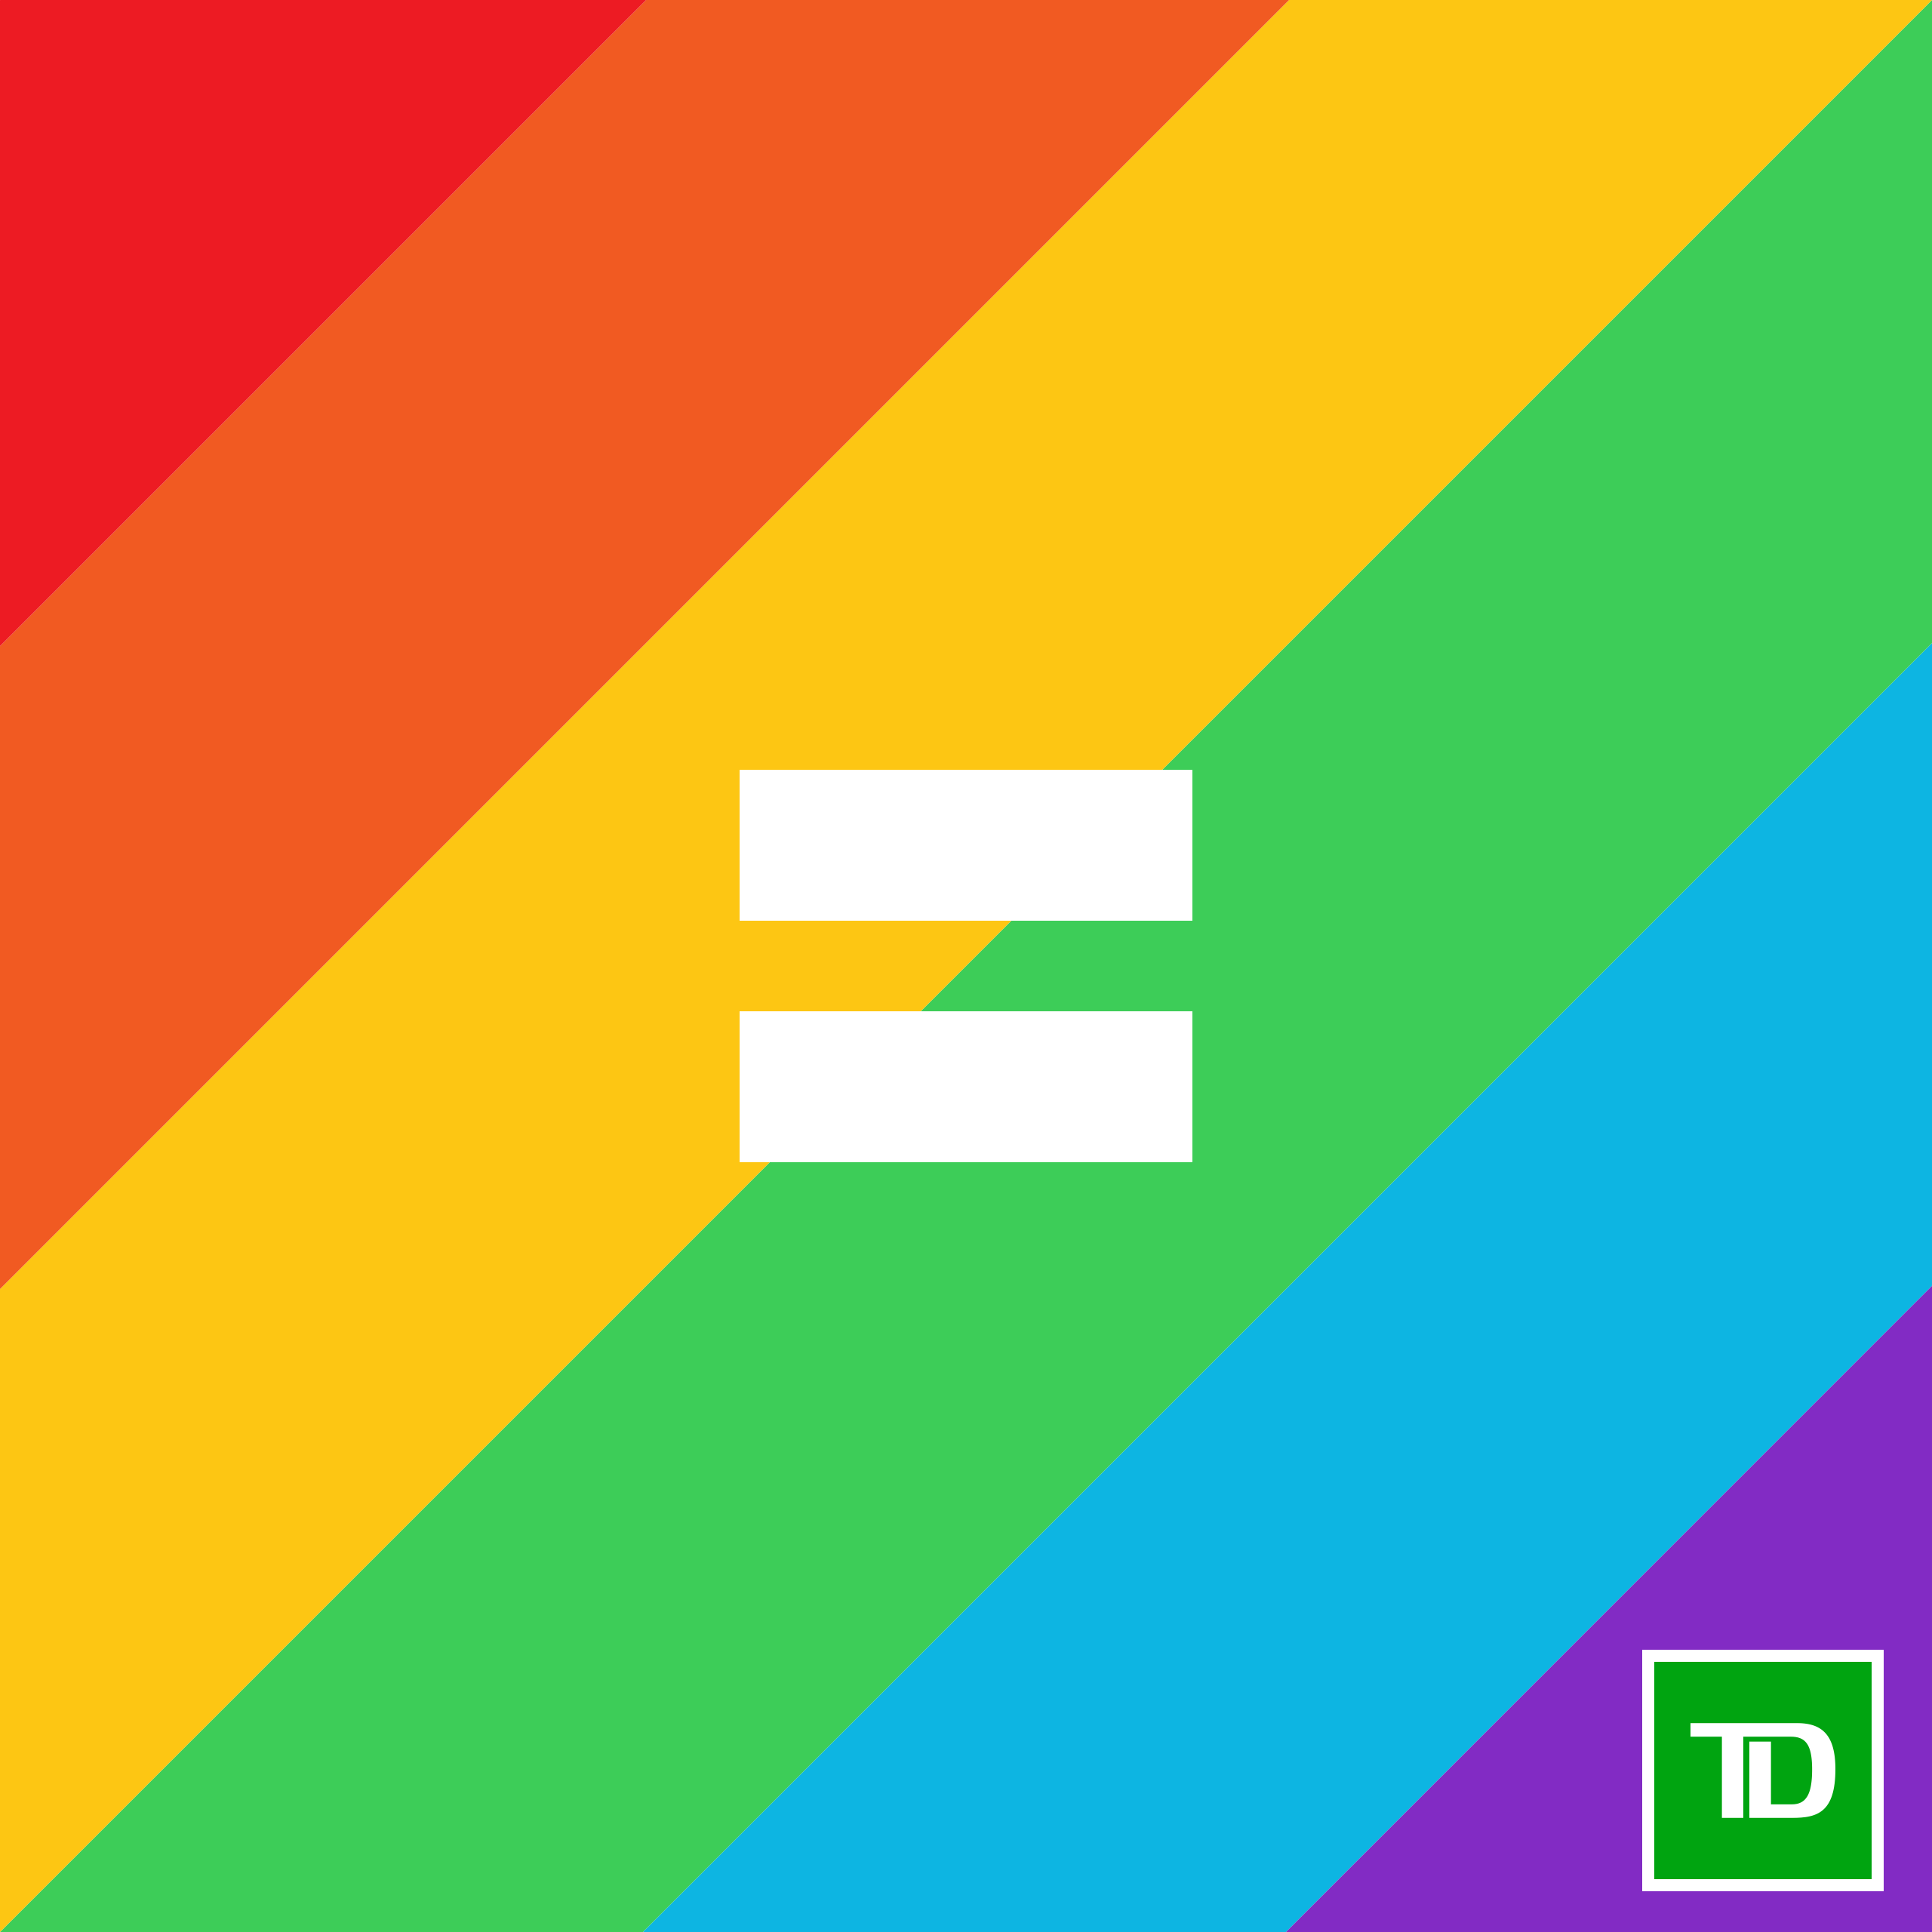 Show your Pride with TD 2560x2560